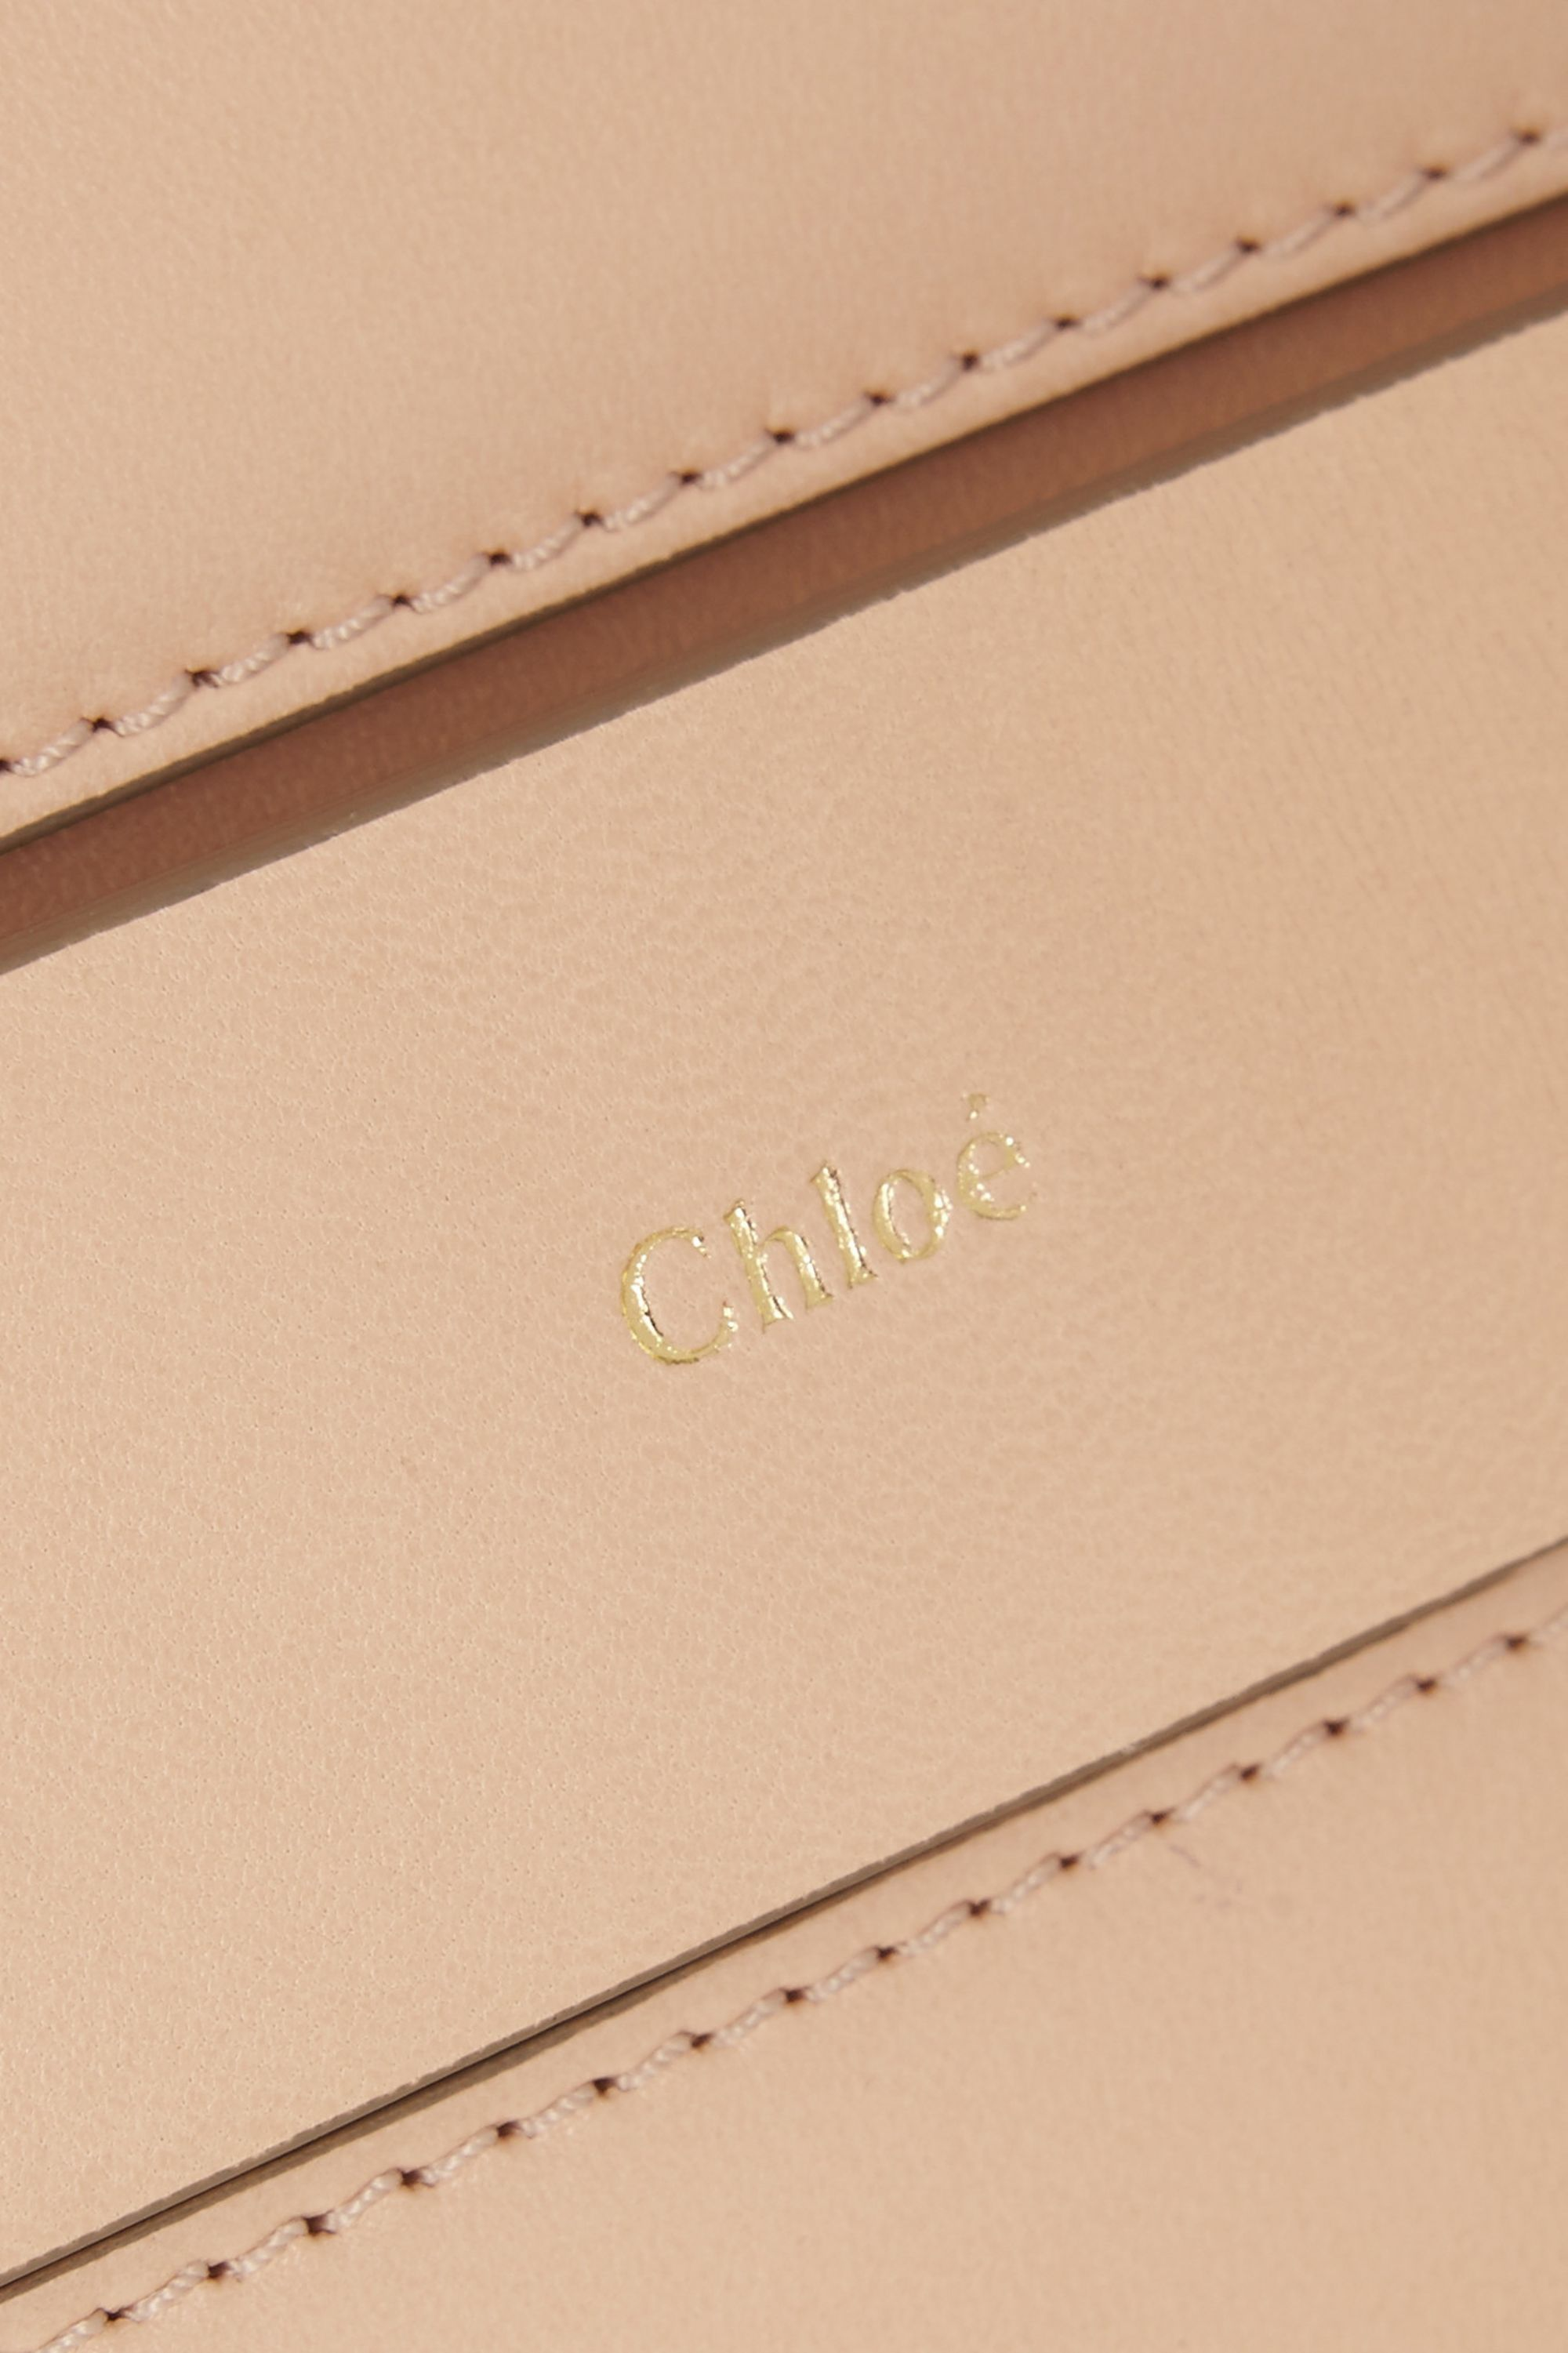 Chloé Elle small leather shoulder bag